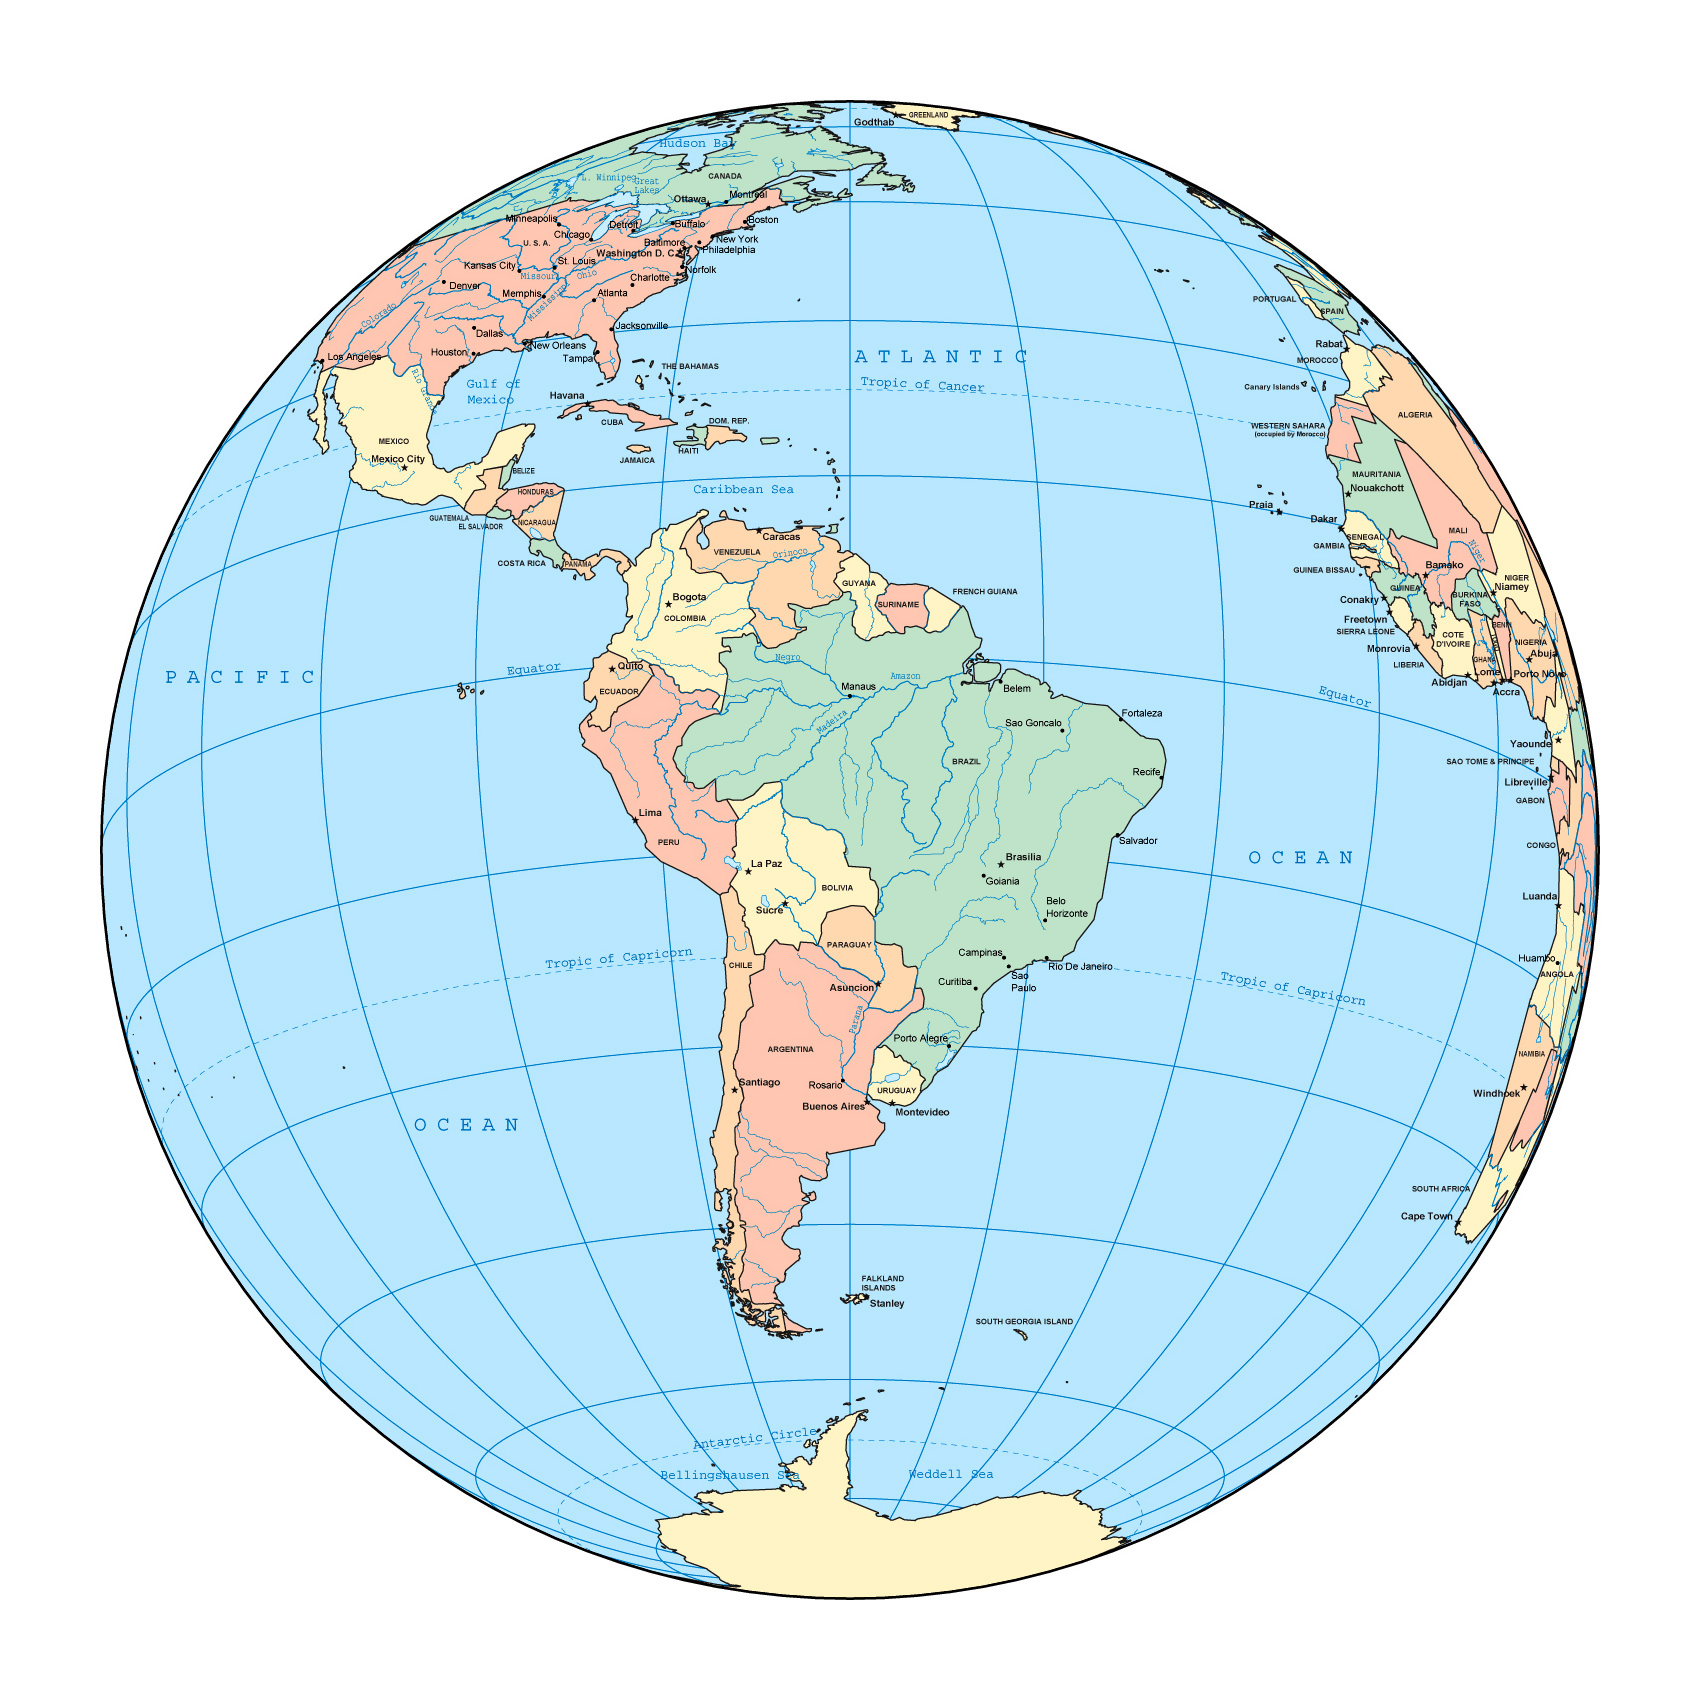 Maps Of South America And South American Countries Political - South america capitals map quiz